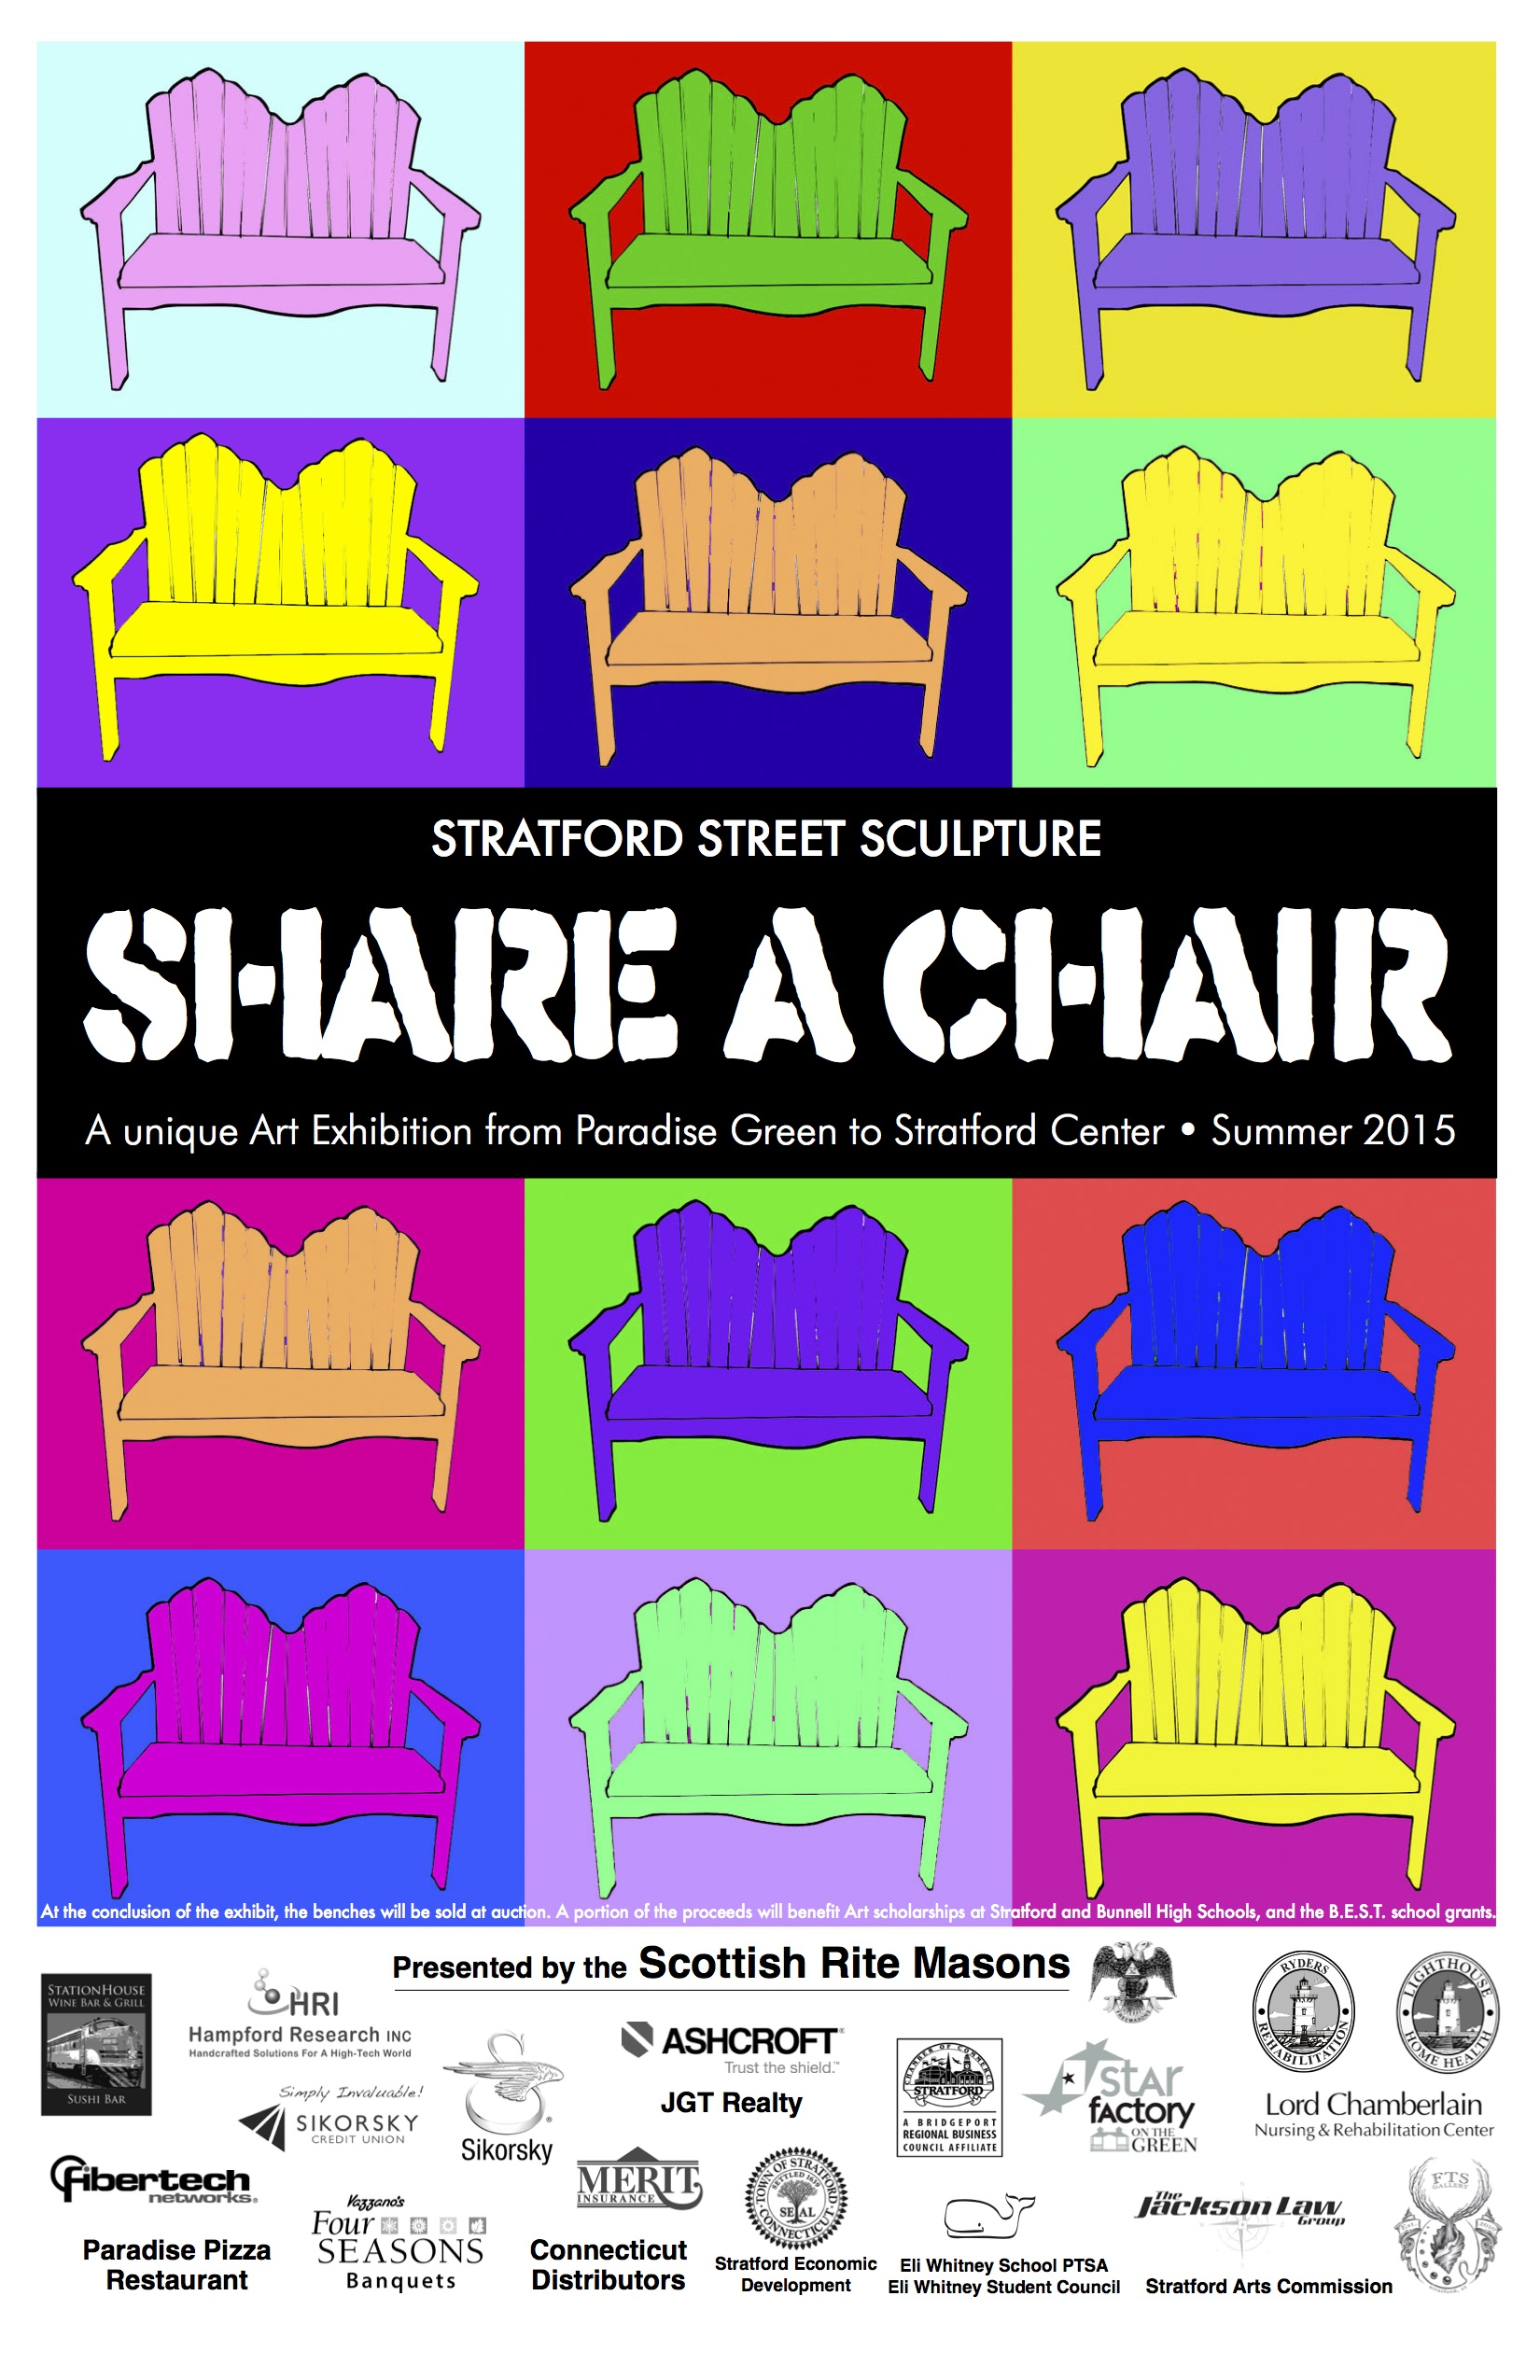 Share a Chair in Stratford, CT. 2015, Shelita Birchett Benash